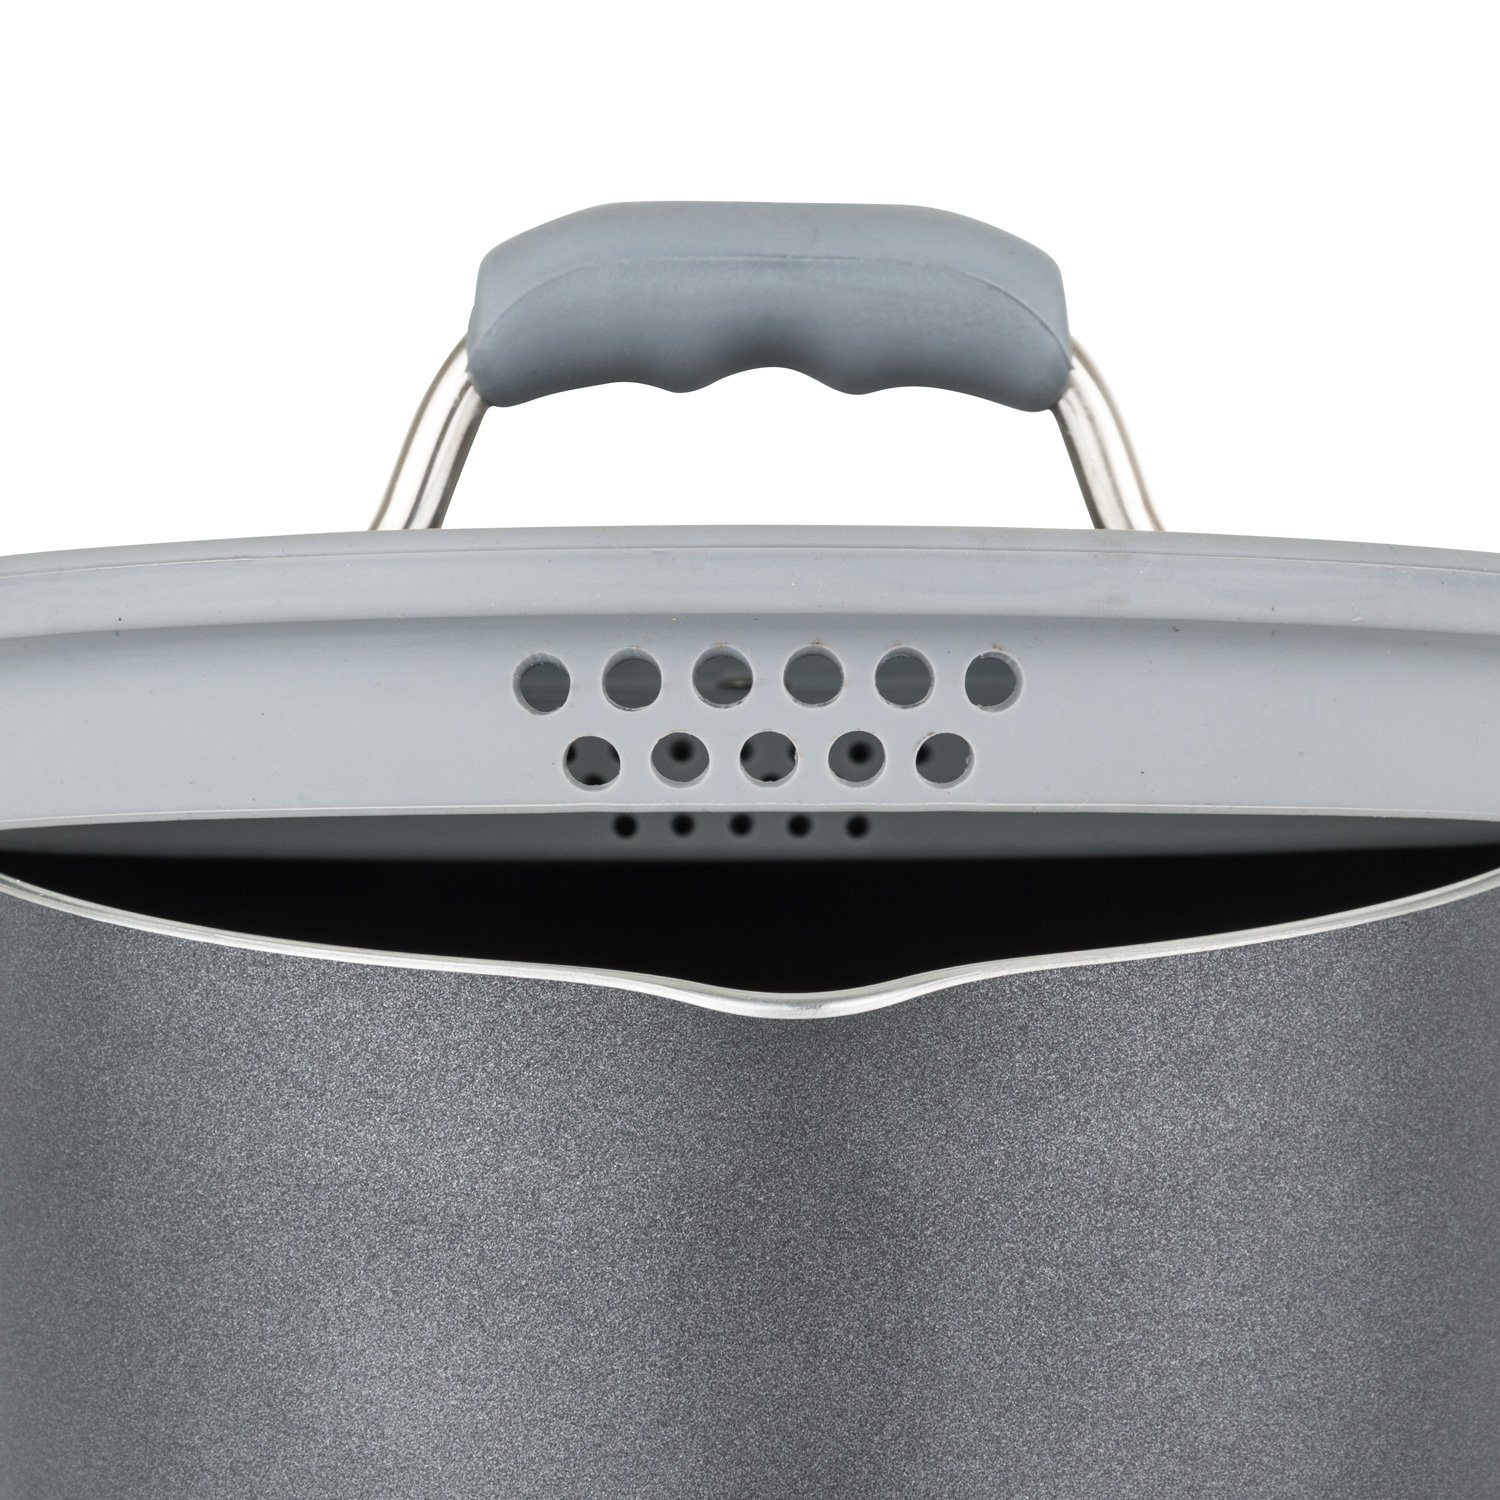 Chopped 60141-9990-GRY Aluminum Cookware Set, 10 Piece, Gray by Chopped (Image #3)